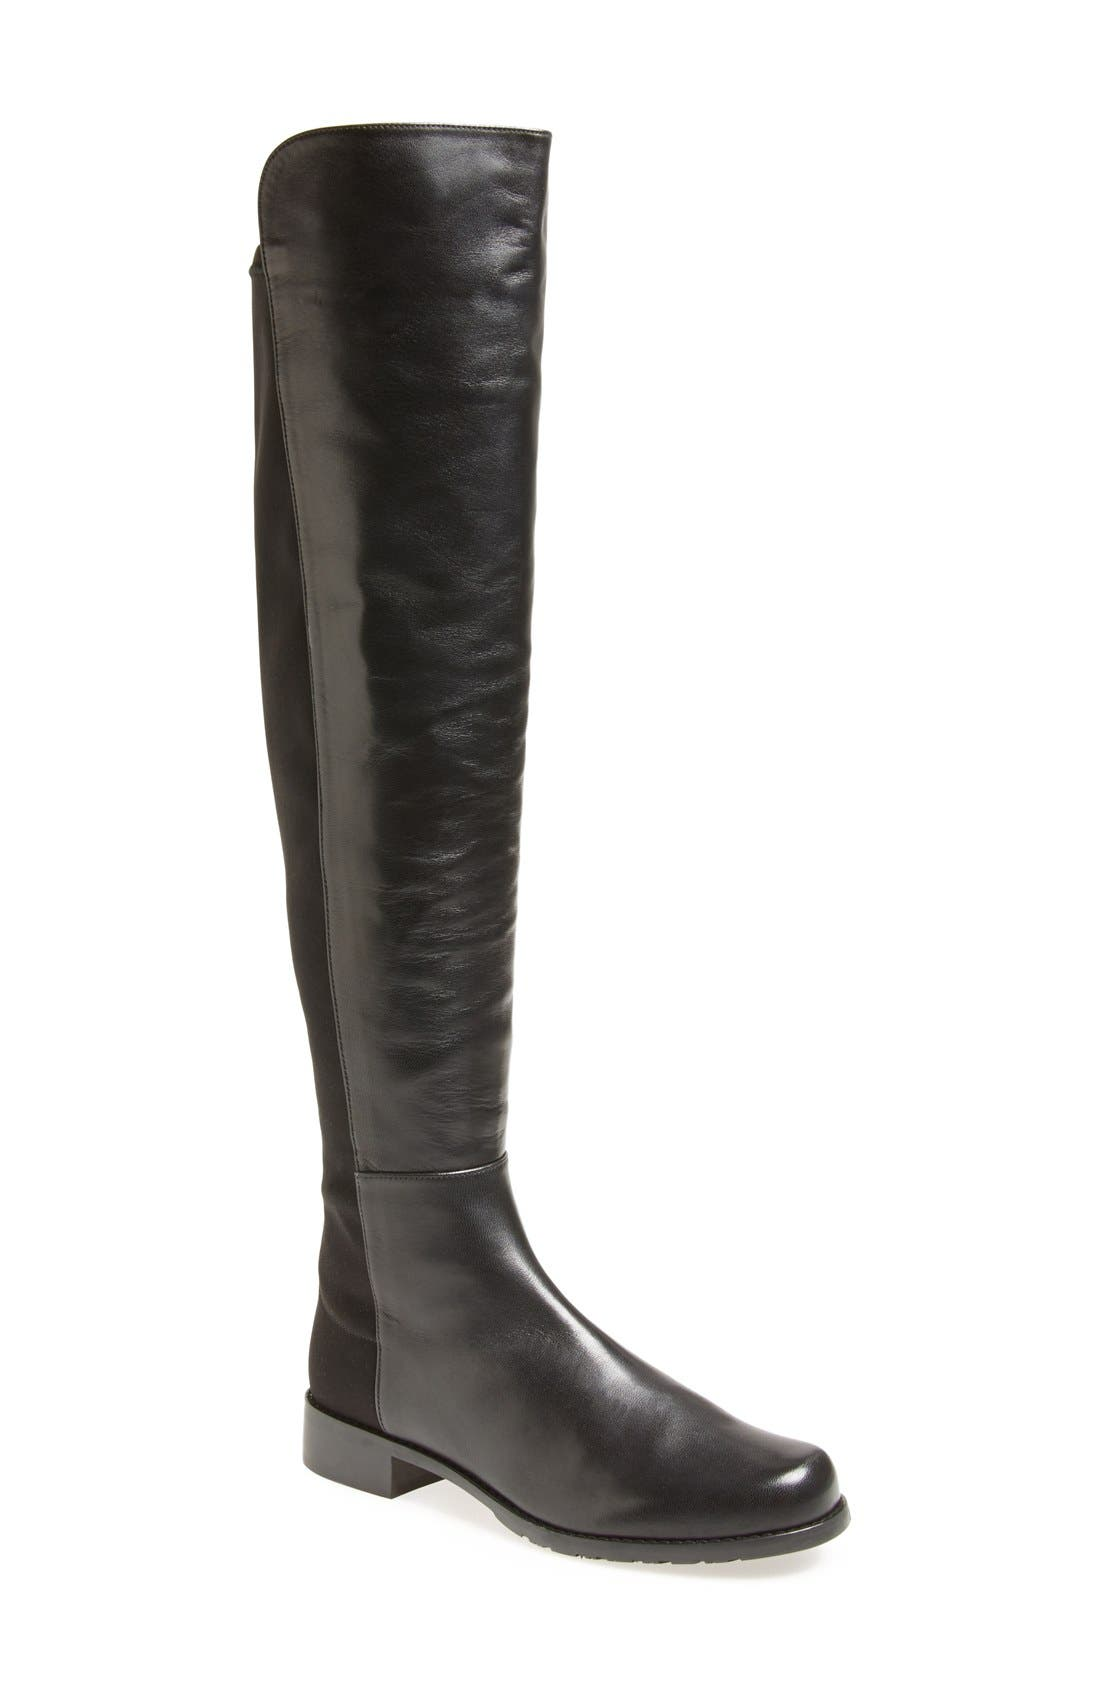 5050 Over the Knee Leather Boot,                             Main thumbnail 1, color,                             BLACK NAPPA